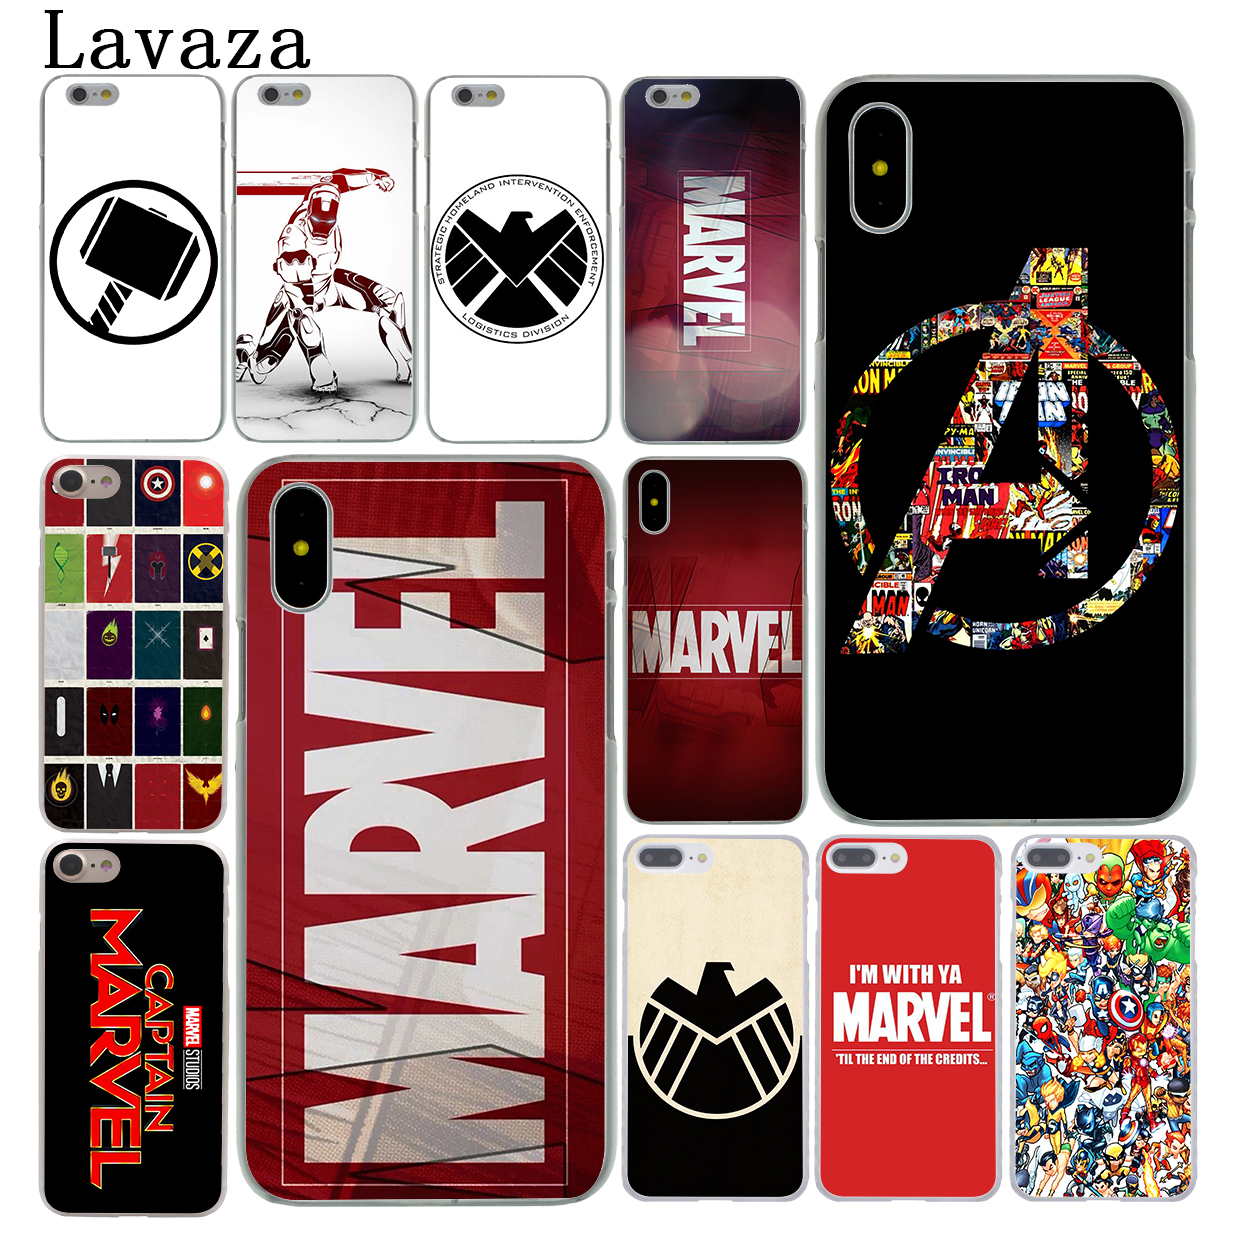 Luxury Marvel Comics logo Hard White Cover Case for iPhone 7 7 Plus 6 6S Plus 5 5S SE 4 4S marvel glass iphone case